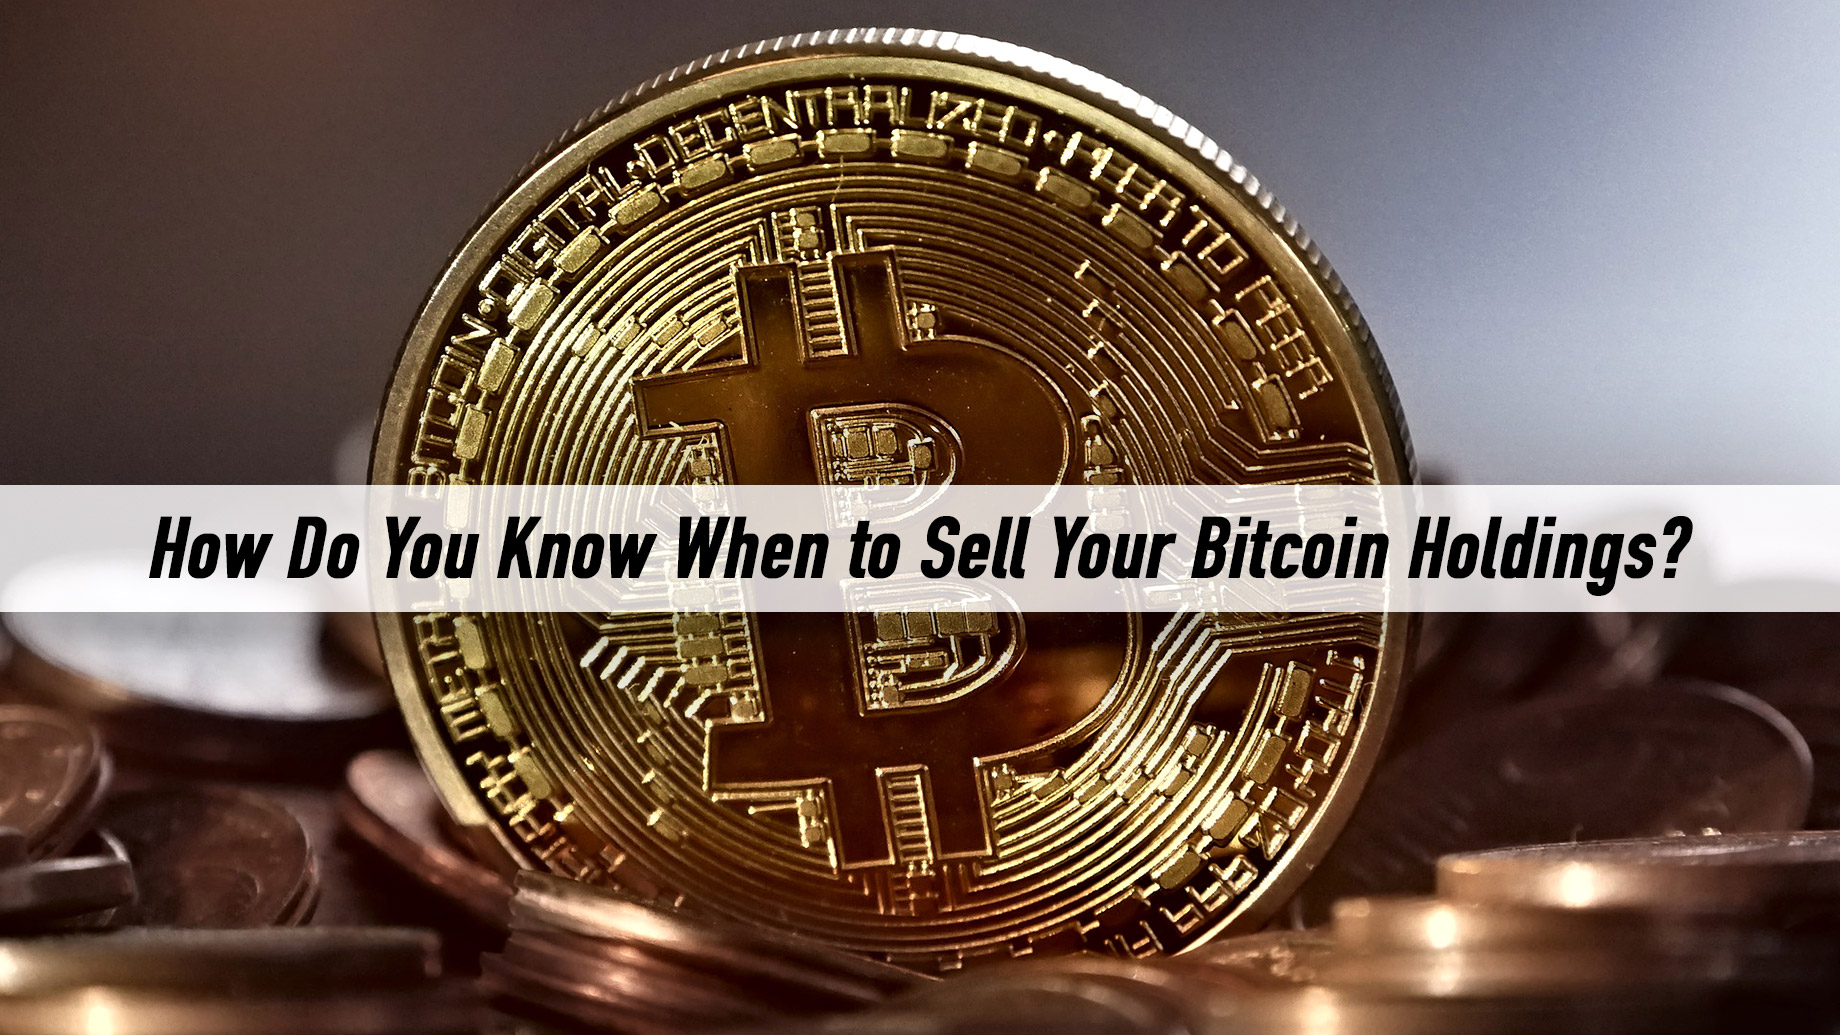 How Do You Know When to Sell Your Bitcoin Holdings?